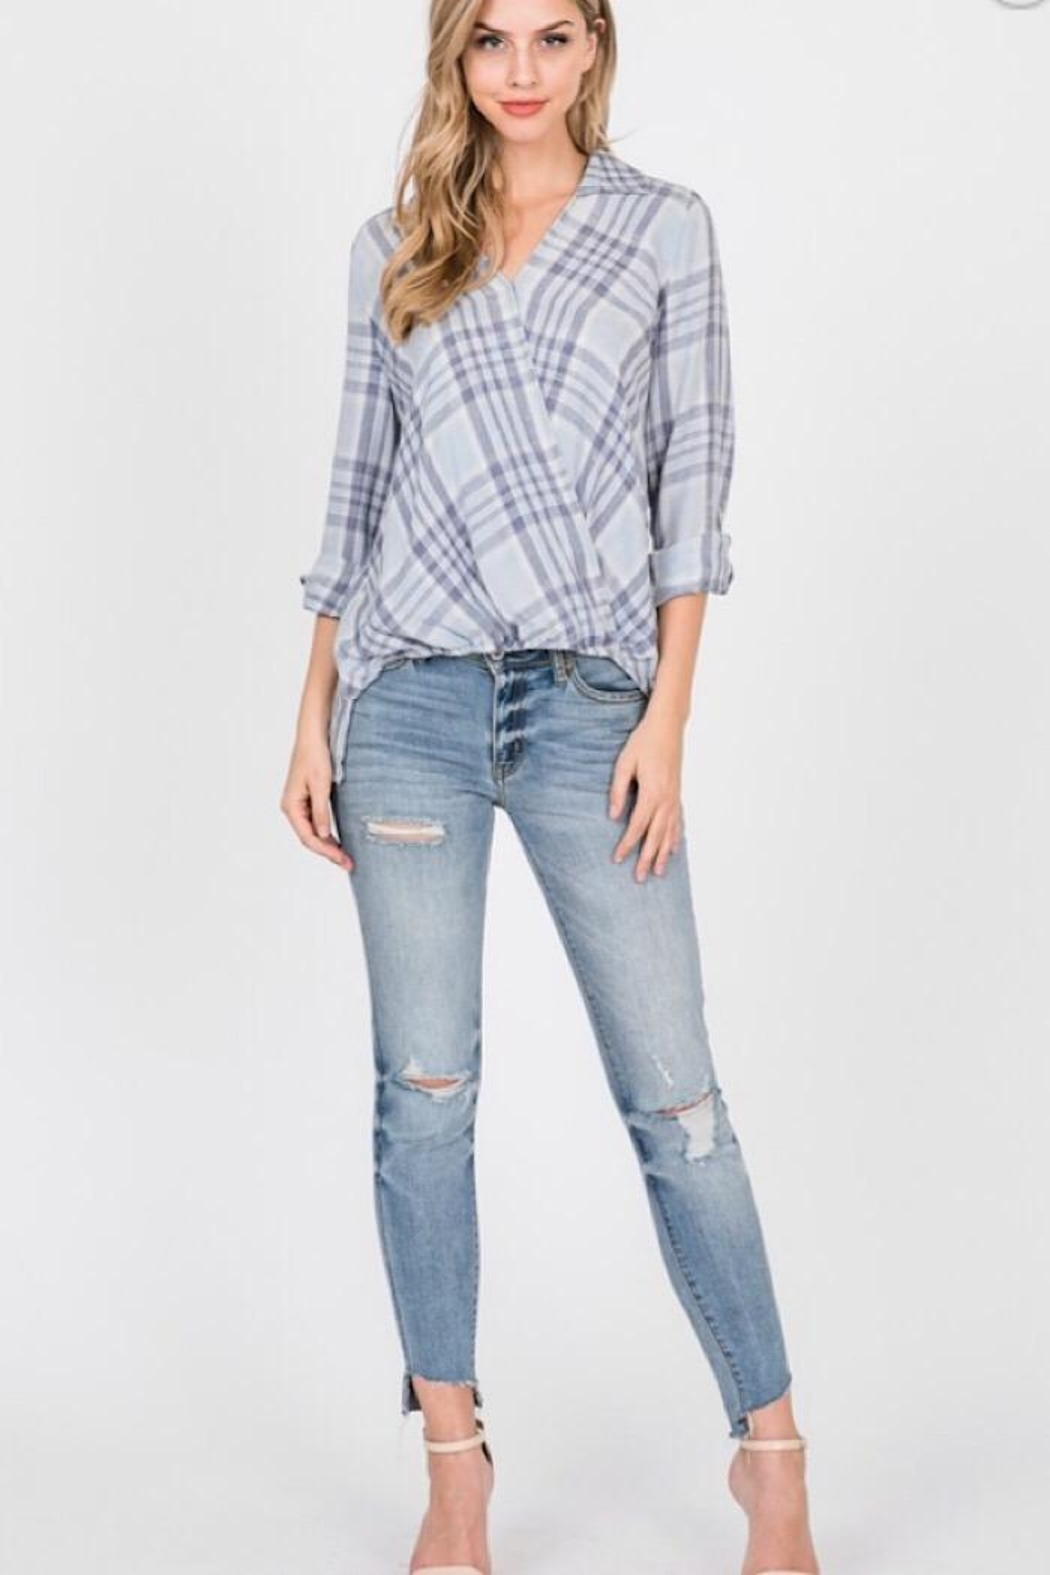 Paper Crane Burnout Woven Surplice Stripe Collared Top - Front Full Image